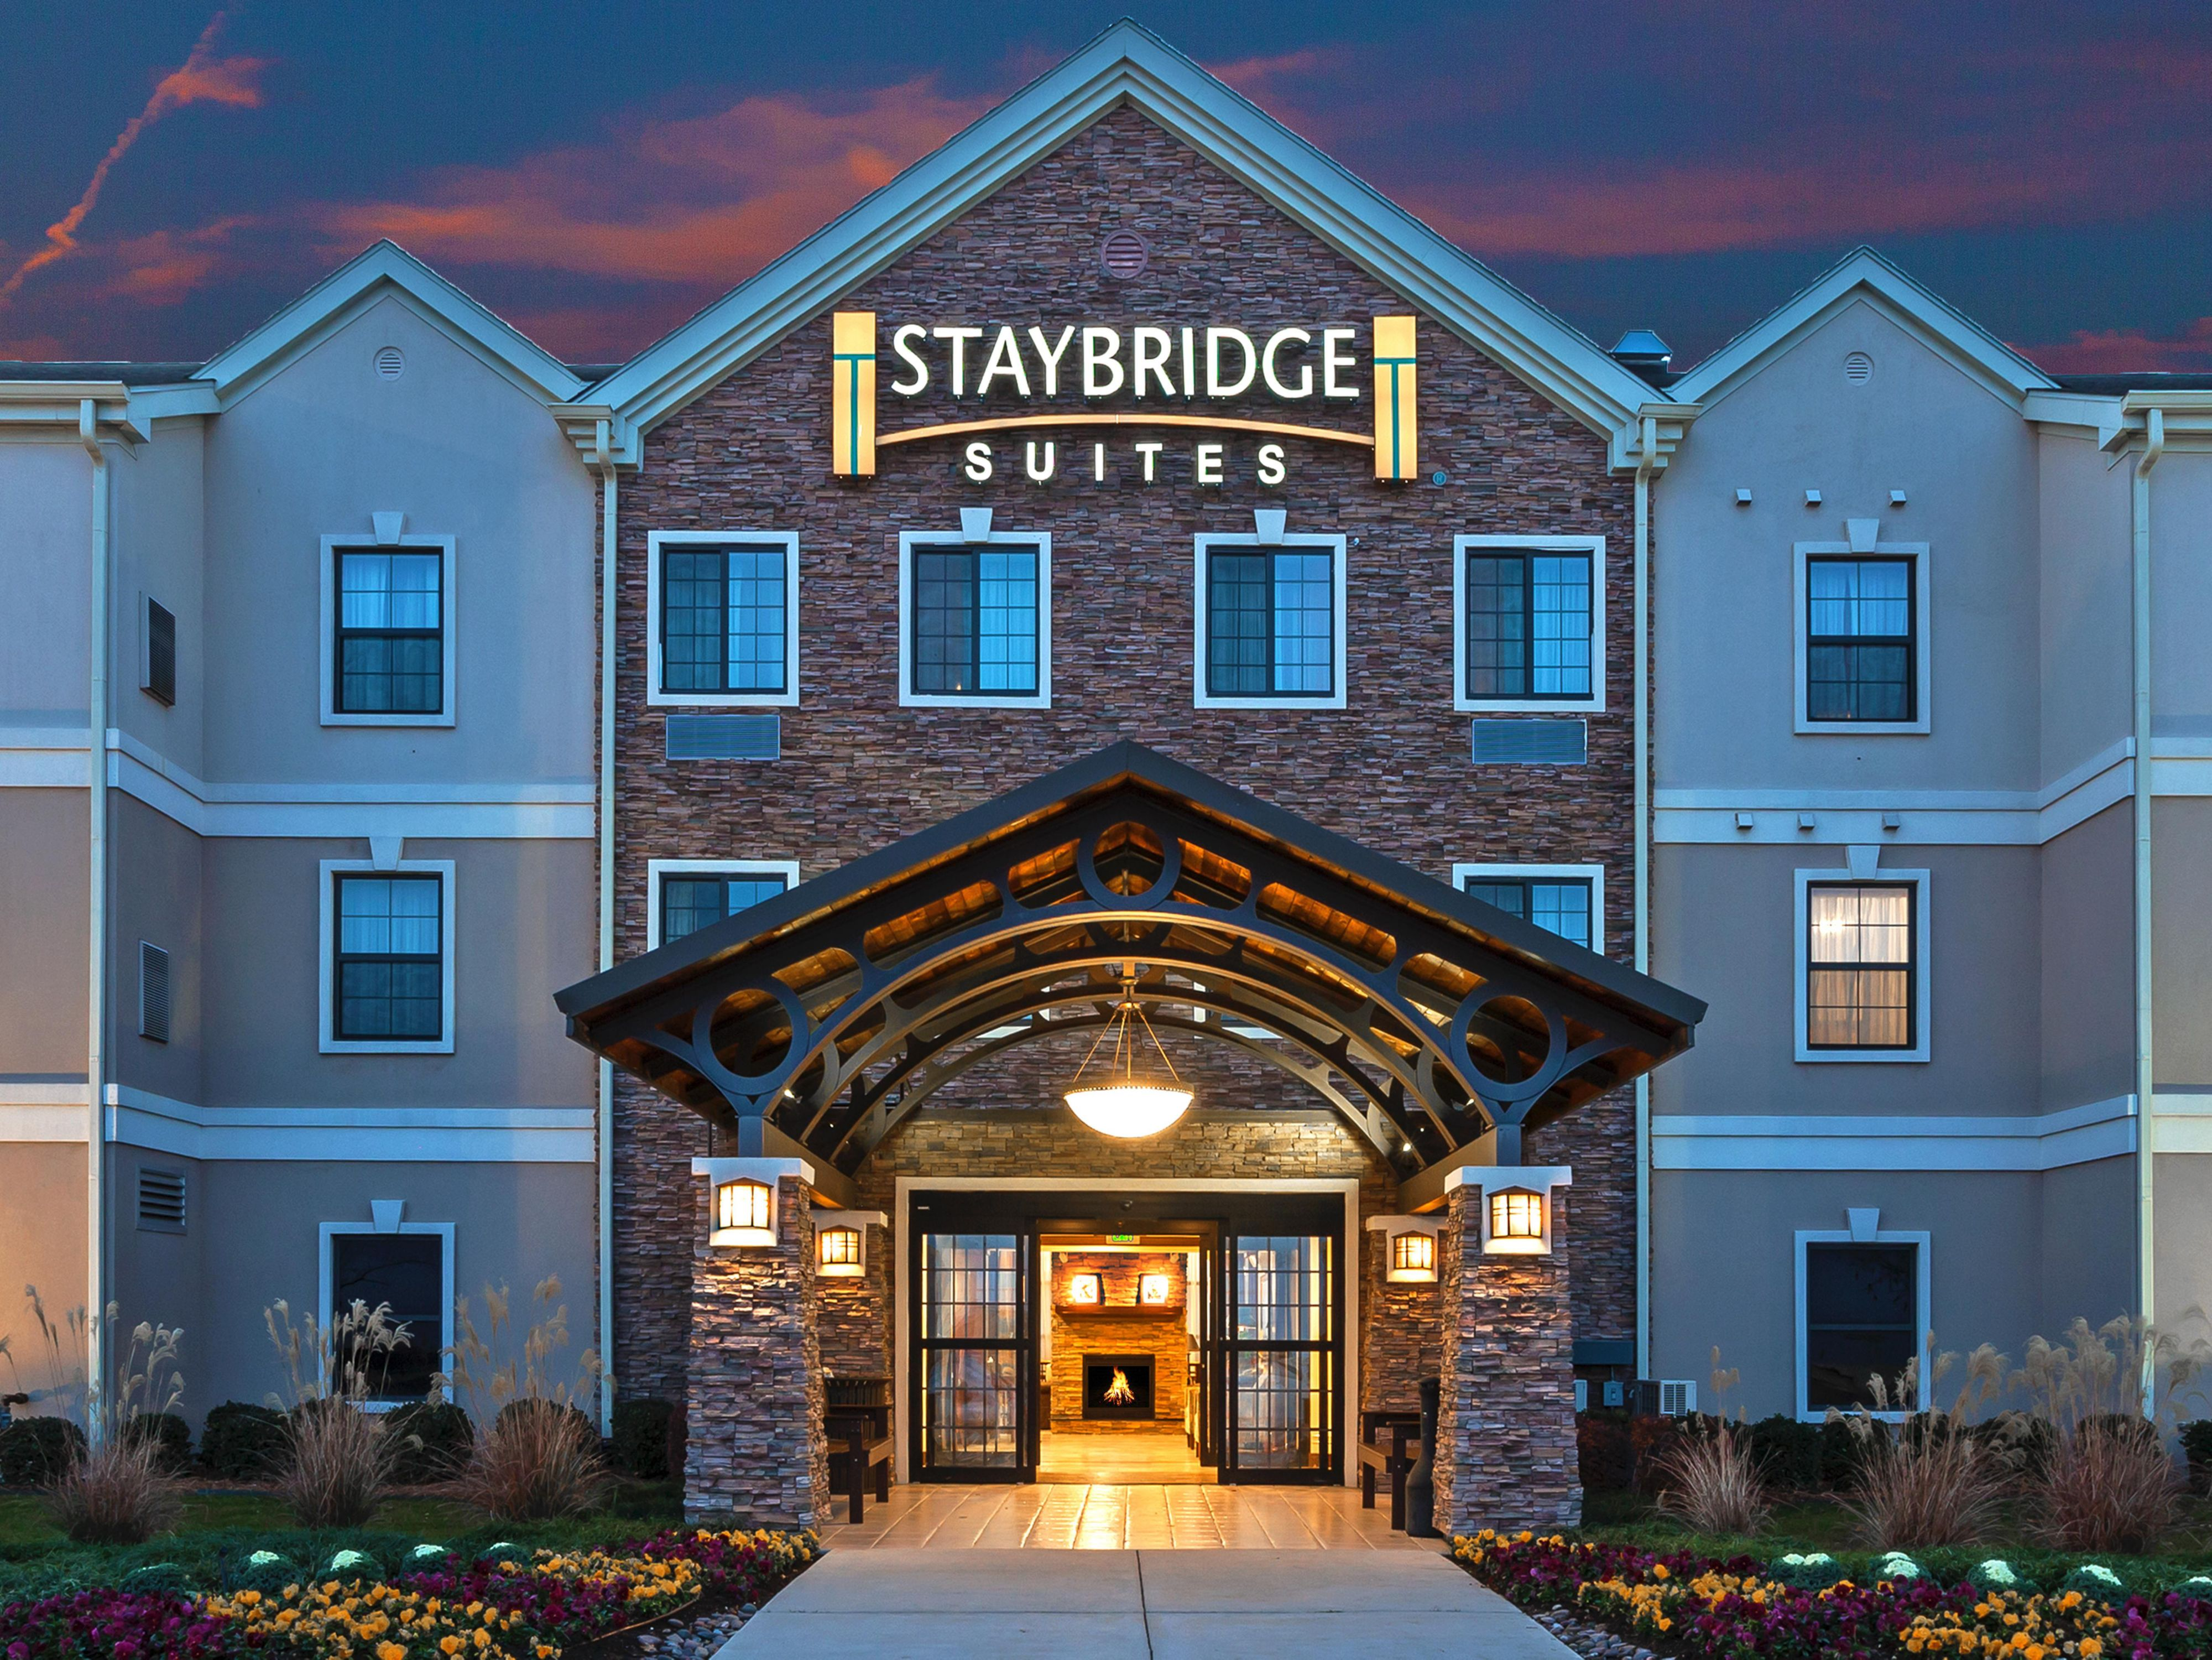 Staybridge Suites Fort Worth West Extended Stay Hotel In